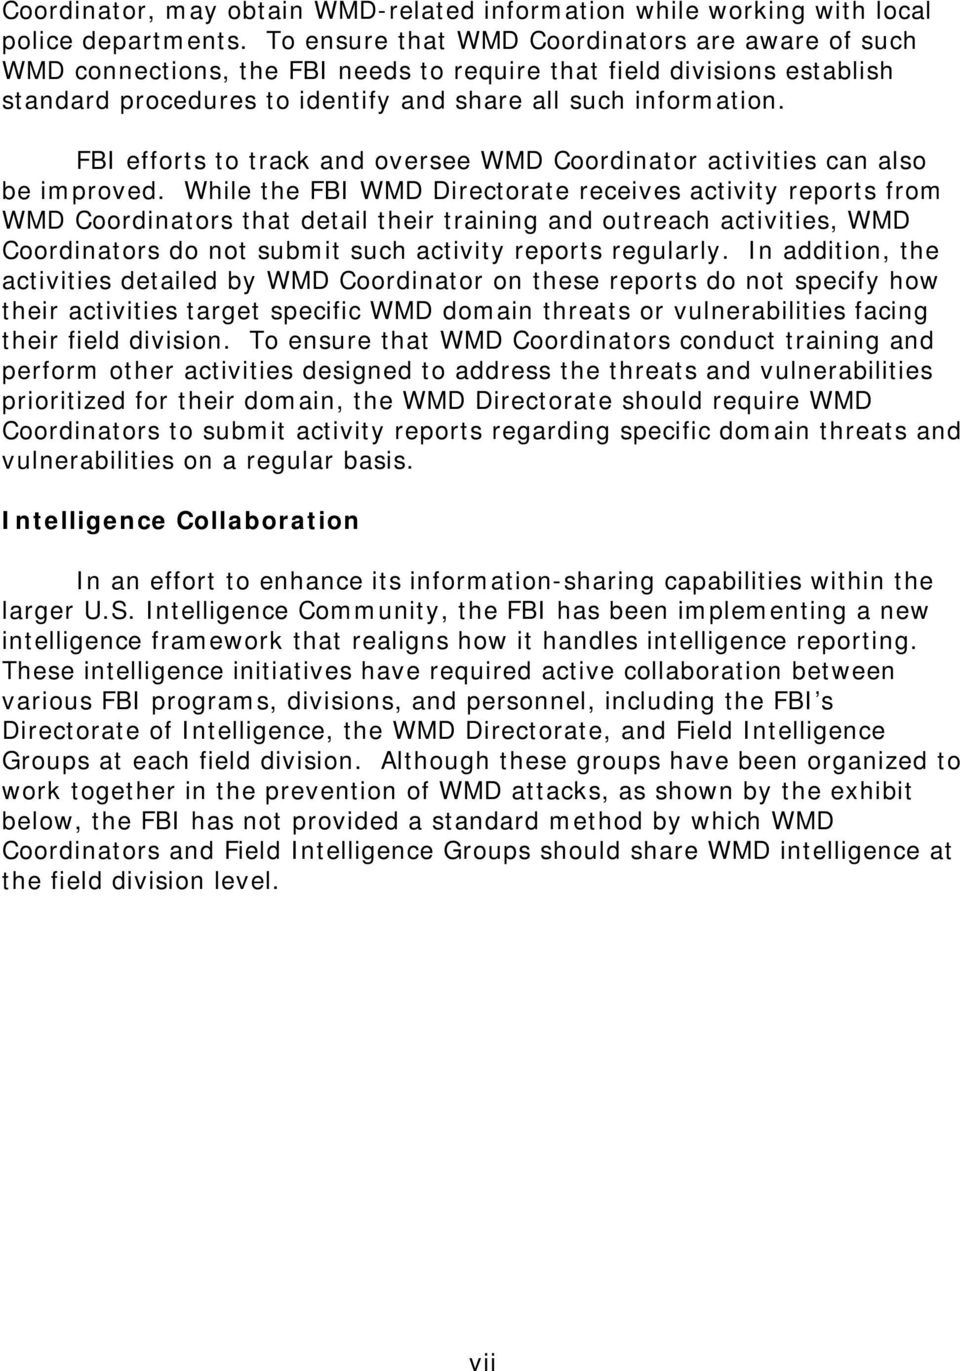 FBI efforts to track and oversee WMD Coordinator activities can also be improved.